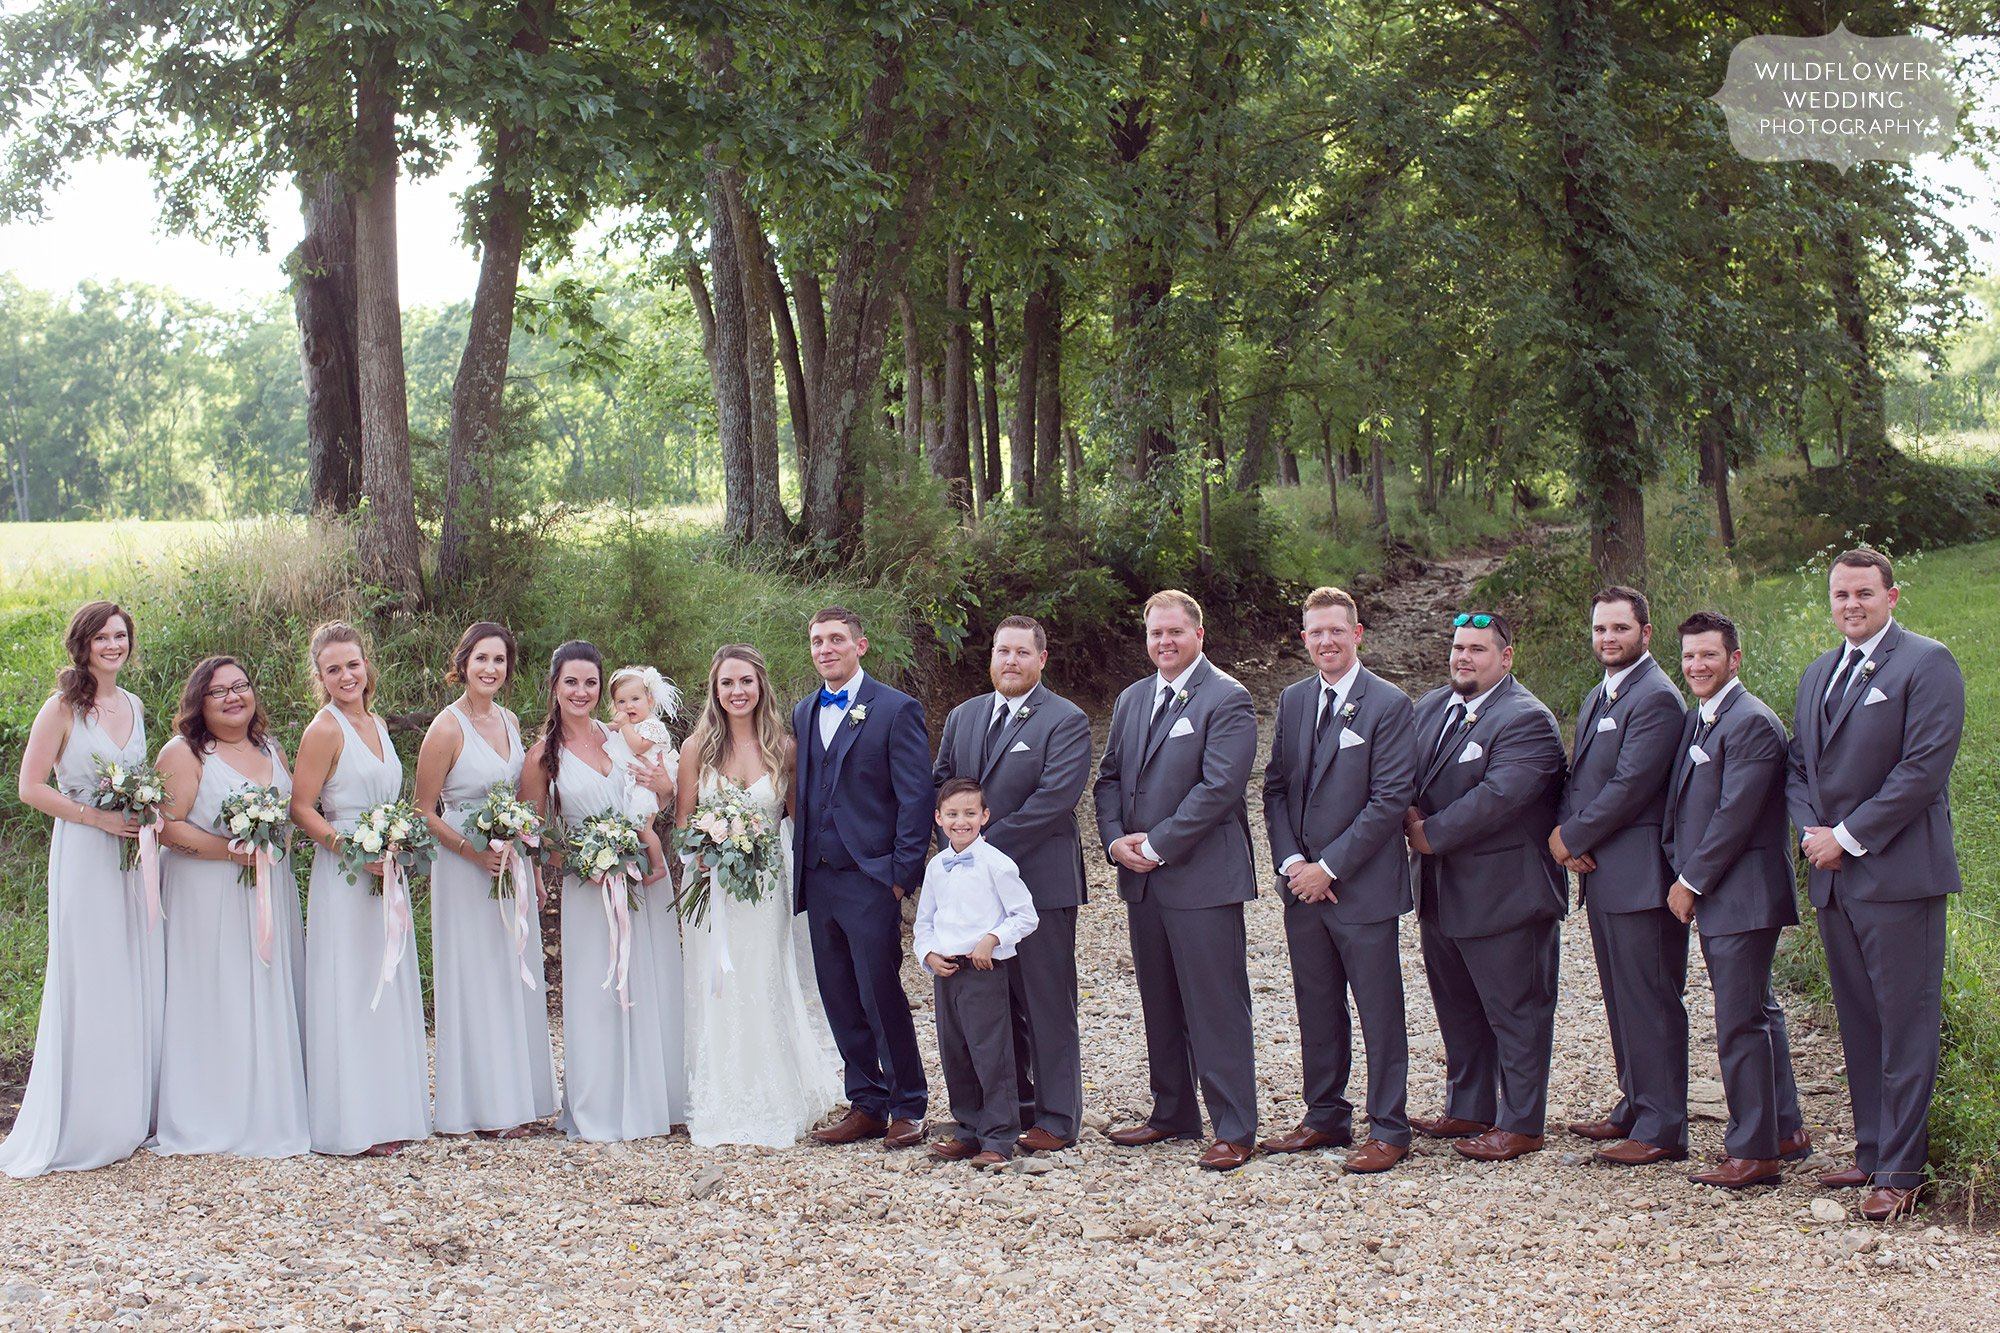 Wedding party poses in the rocky creekbed at this rustic barn wedding venue in Westphalia.